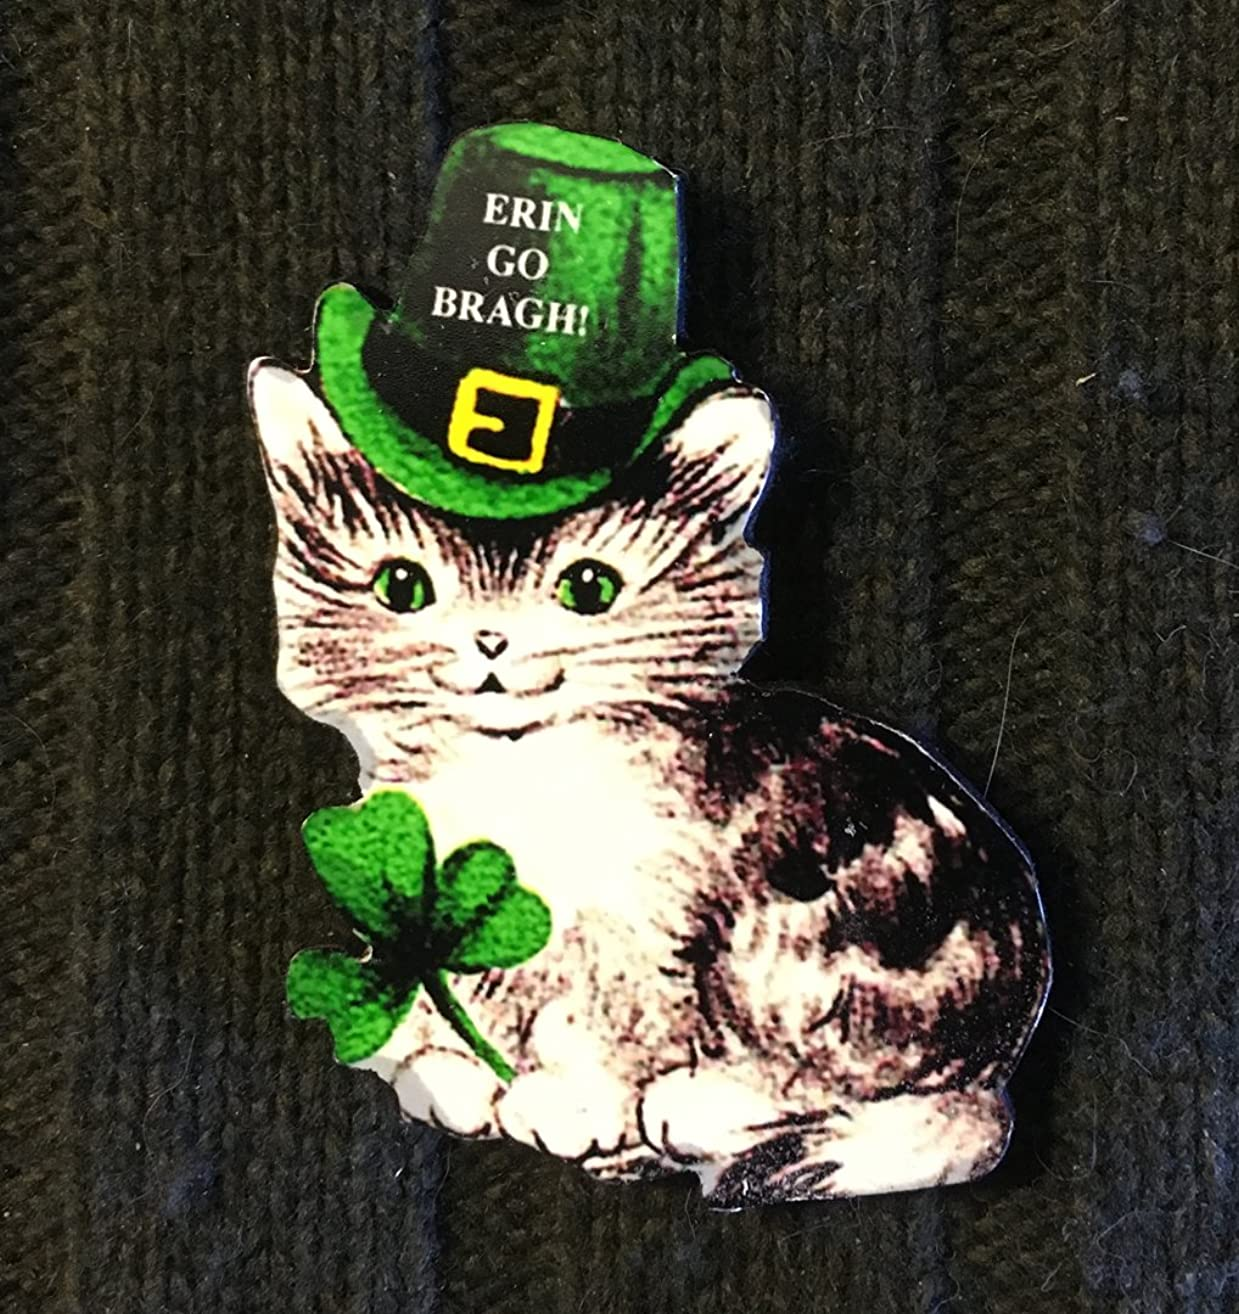 St Patrick's Day Kitty Pin Brooch, Handcrafted Wood, Irish Cat Magnet, Jewelry, March 17, Green Hat, 1950s Decor, Shamrock, Ornament